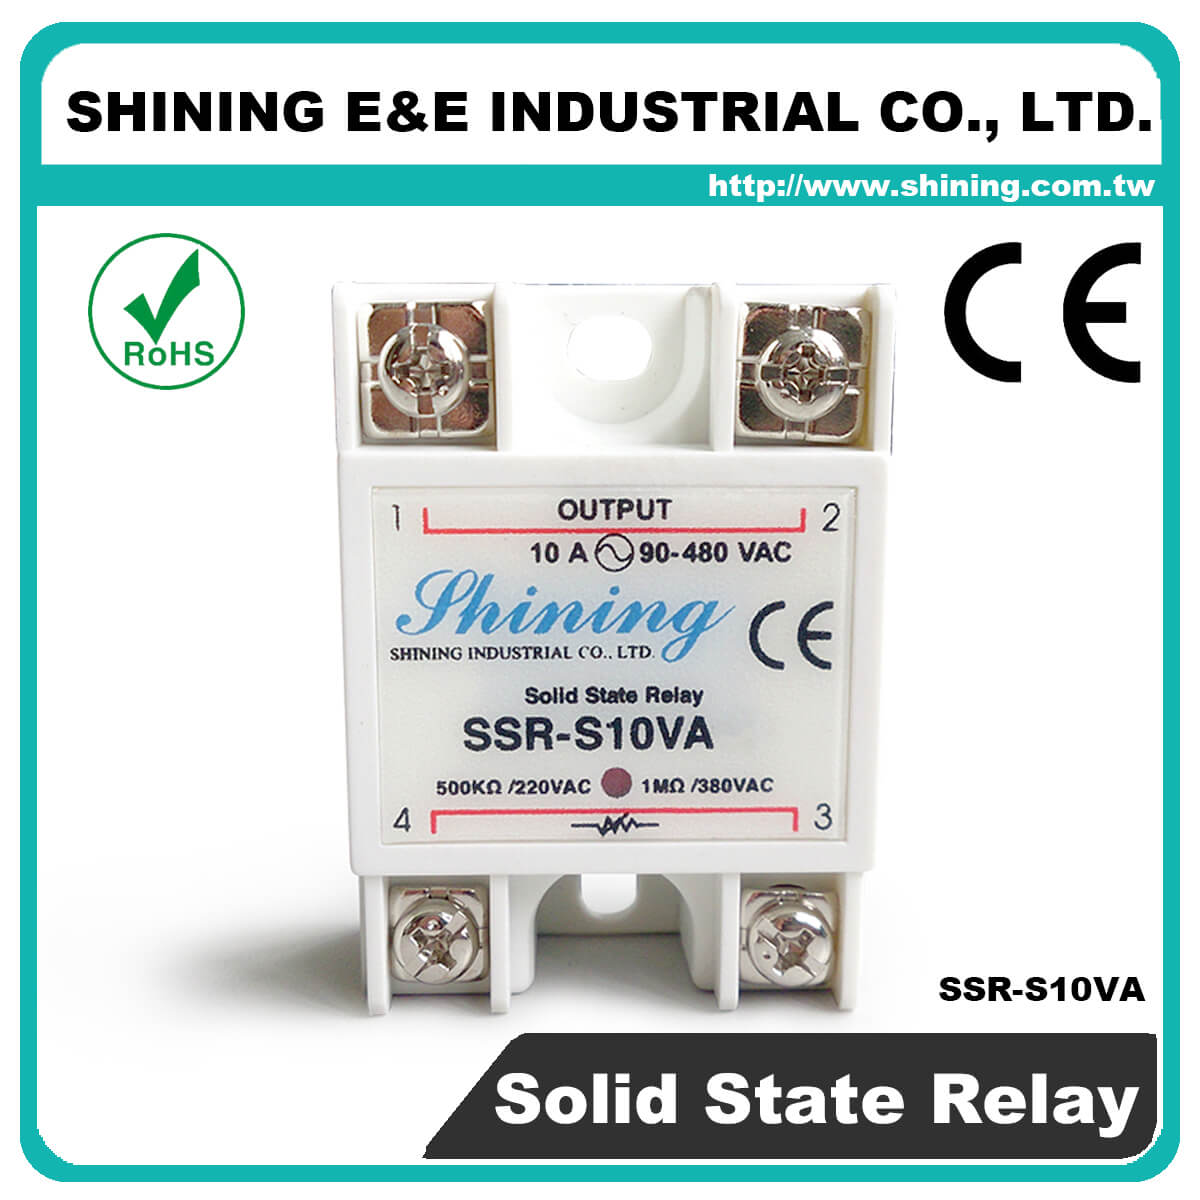 Ssr Sxxva Series Vrtoac Single Phase Solid State Relay 220v Ac S10va Vr To 10a 280vac S